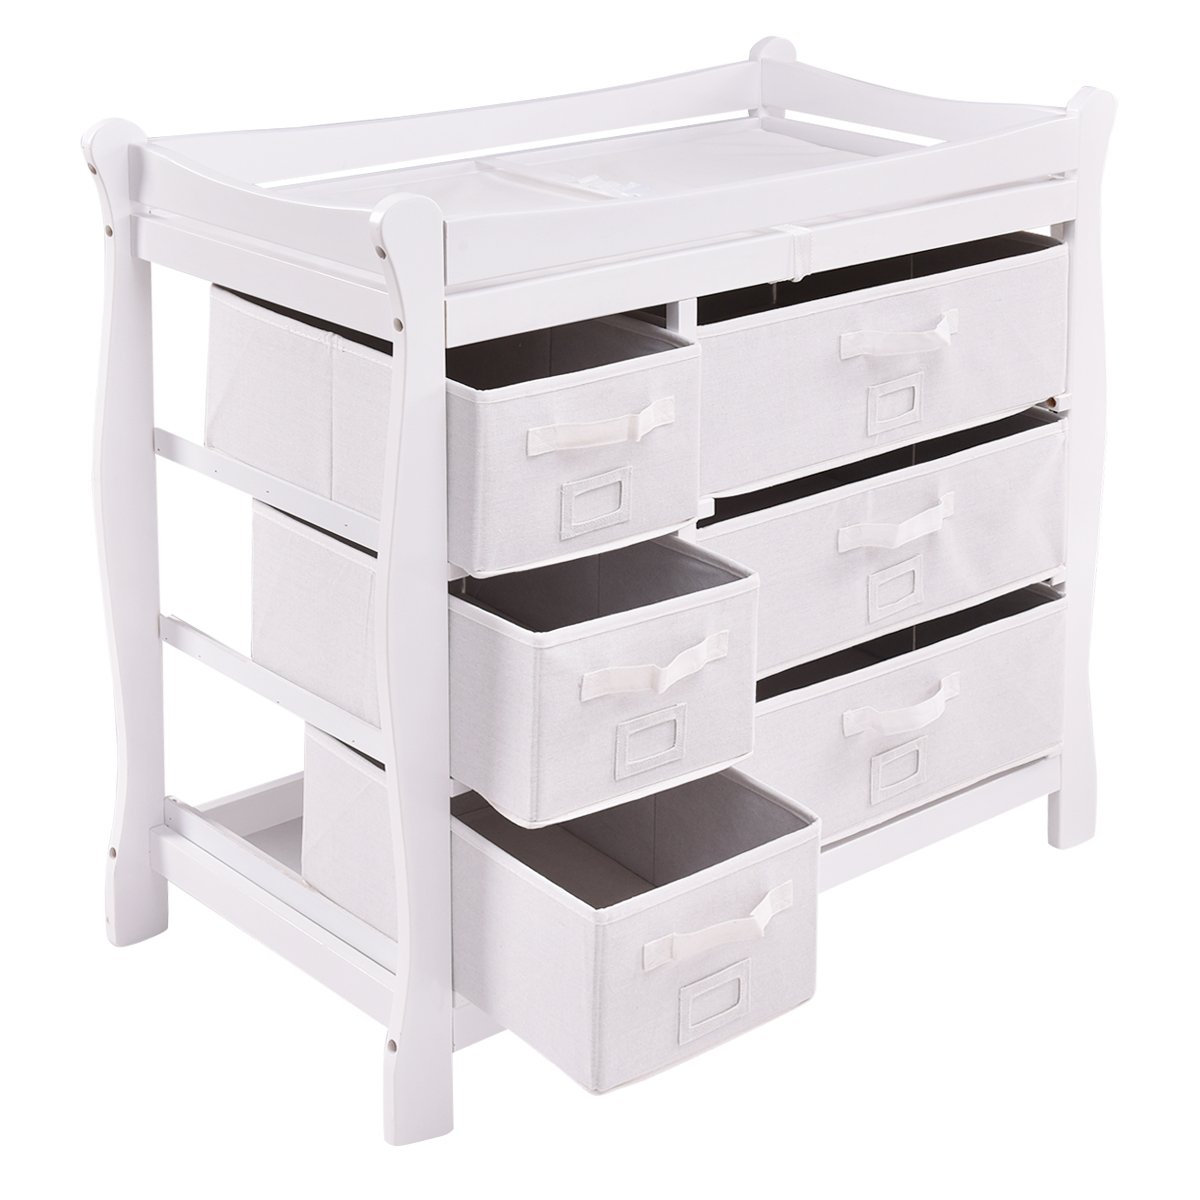 Costzon Baby Changing Table Infant Diaper Nursery Station w/6 Basket Storage Drawers (White) by Costzon (Image #9)